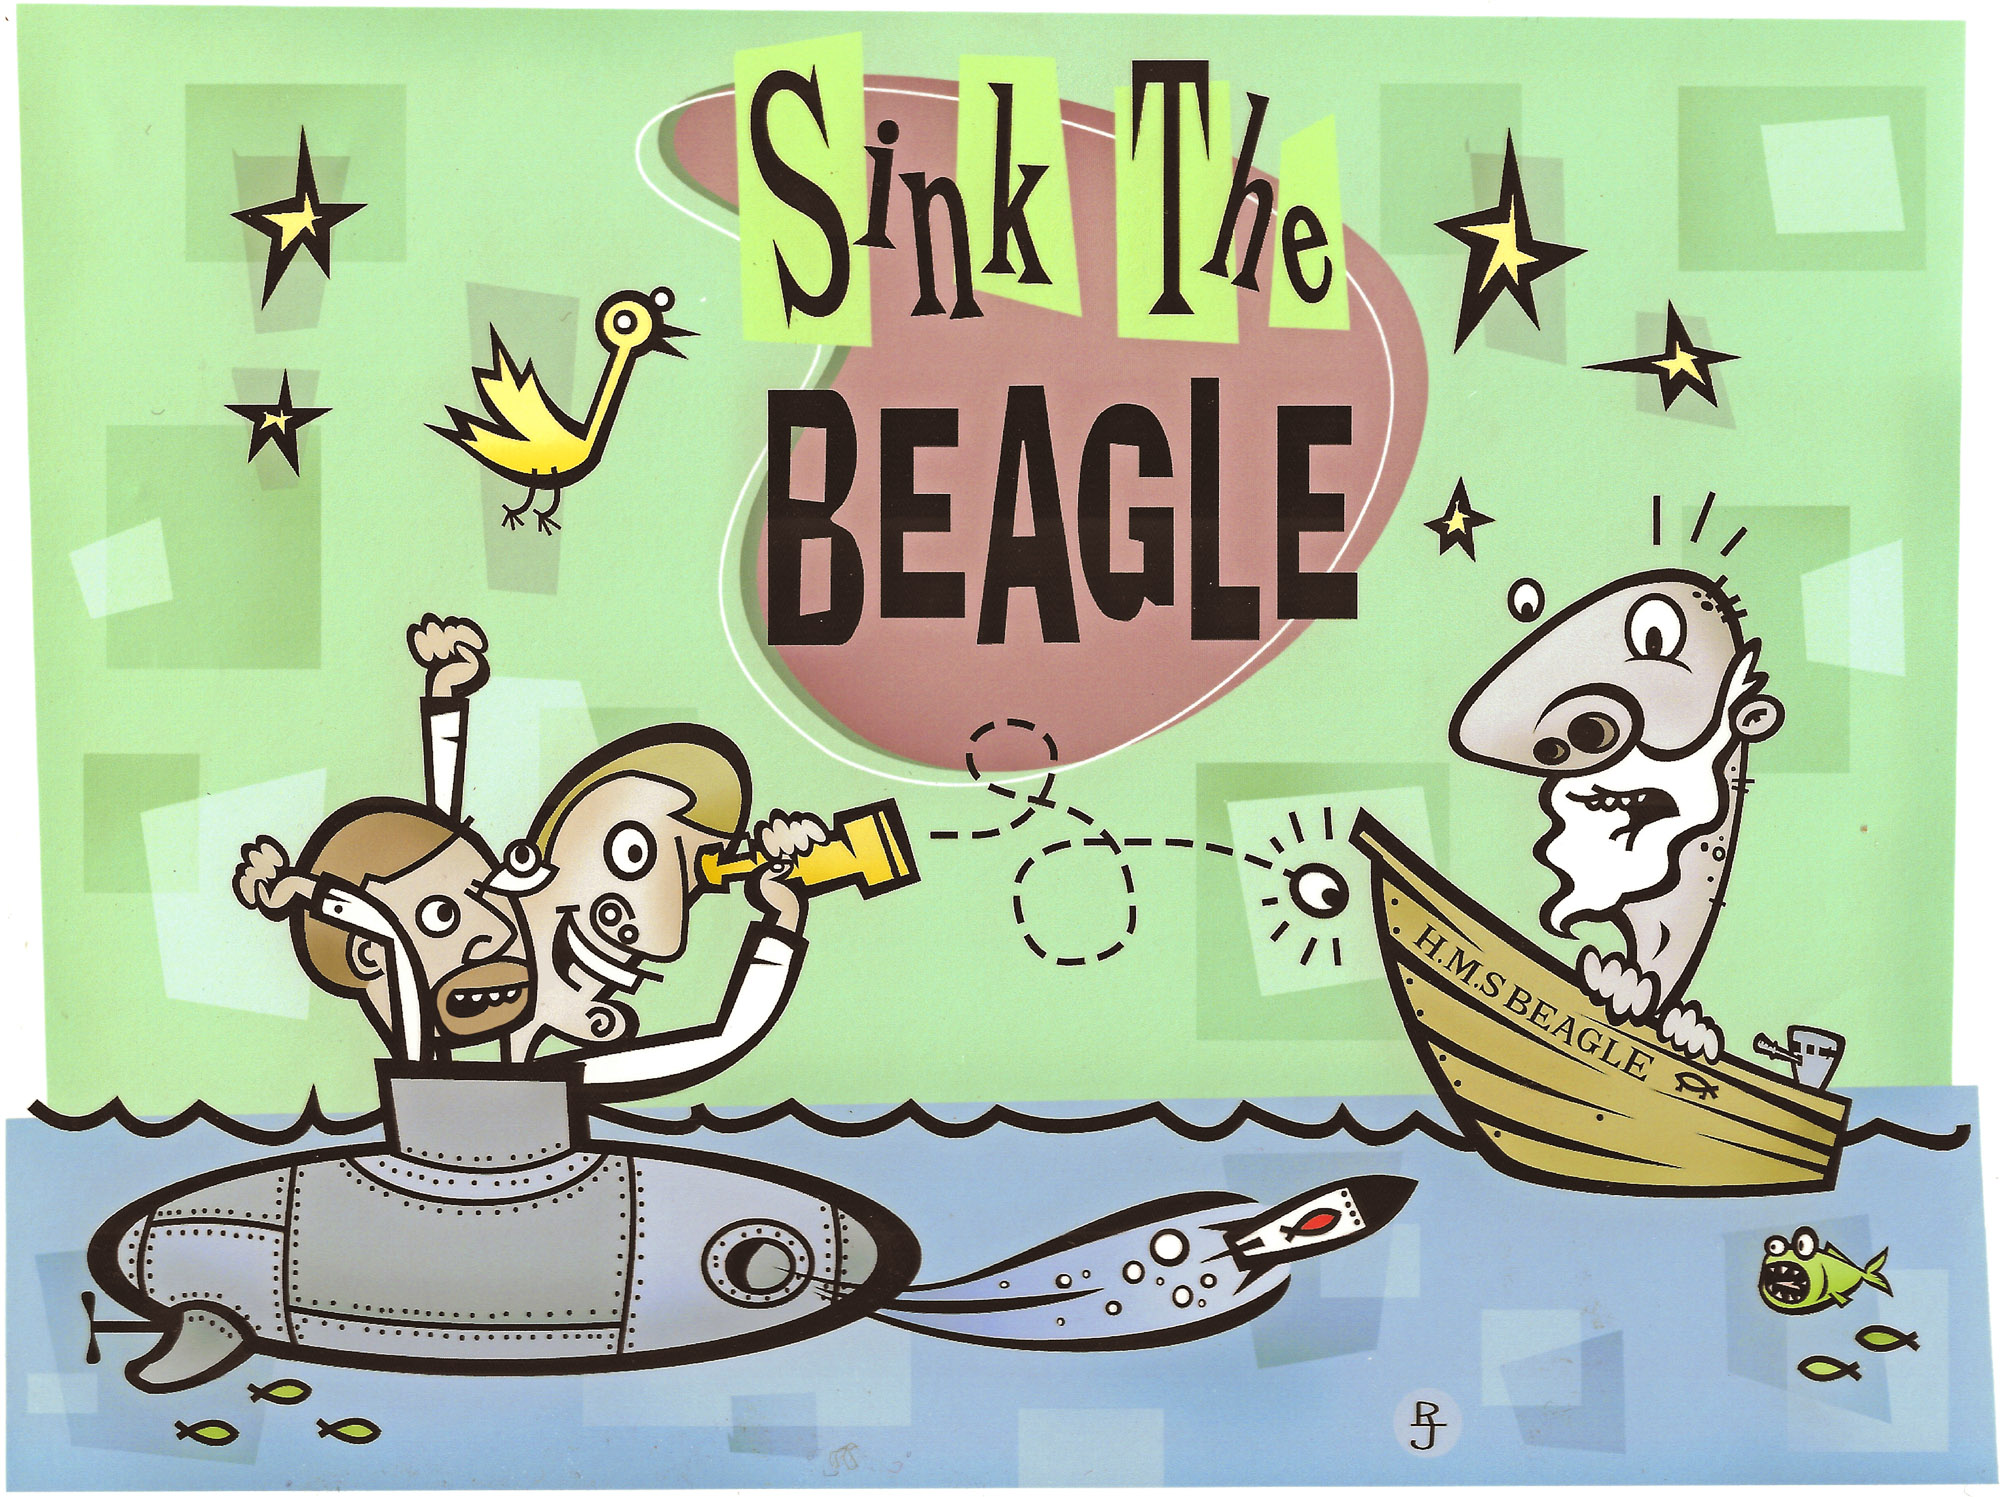 Sink the Beagle logo